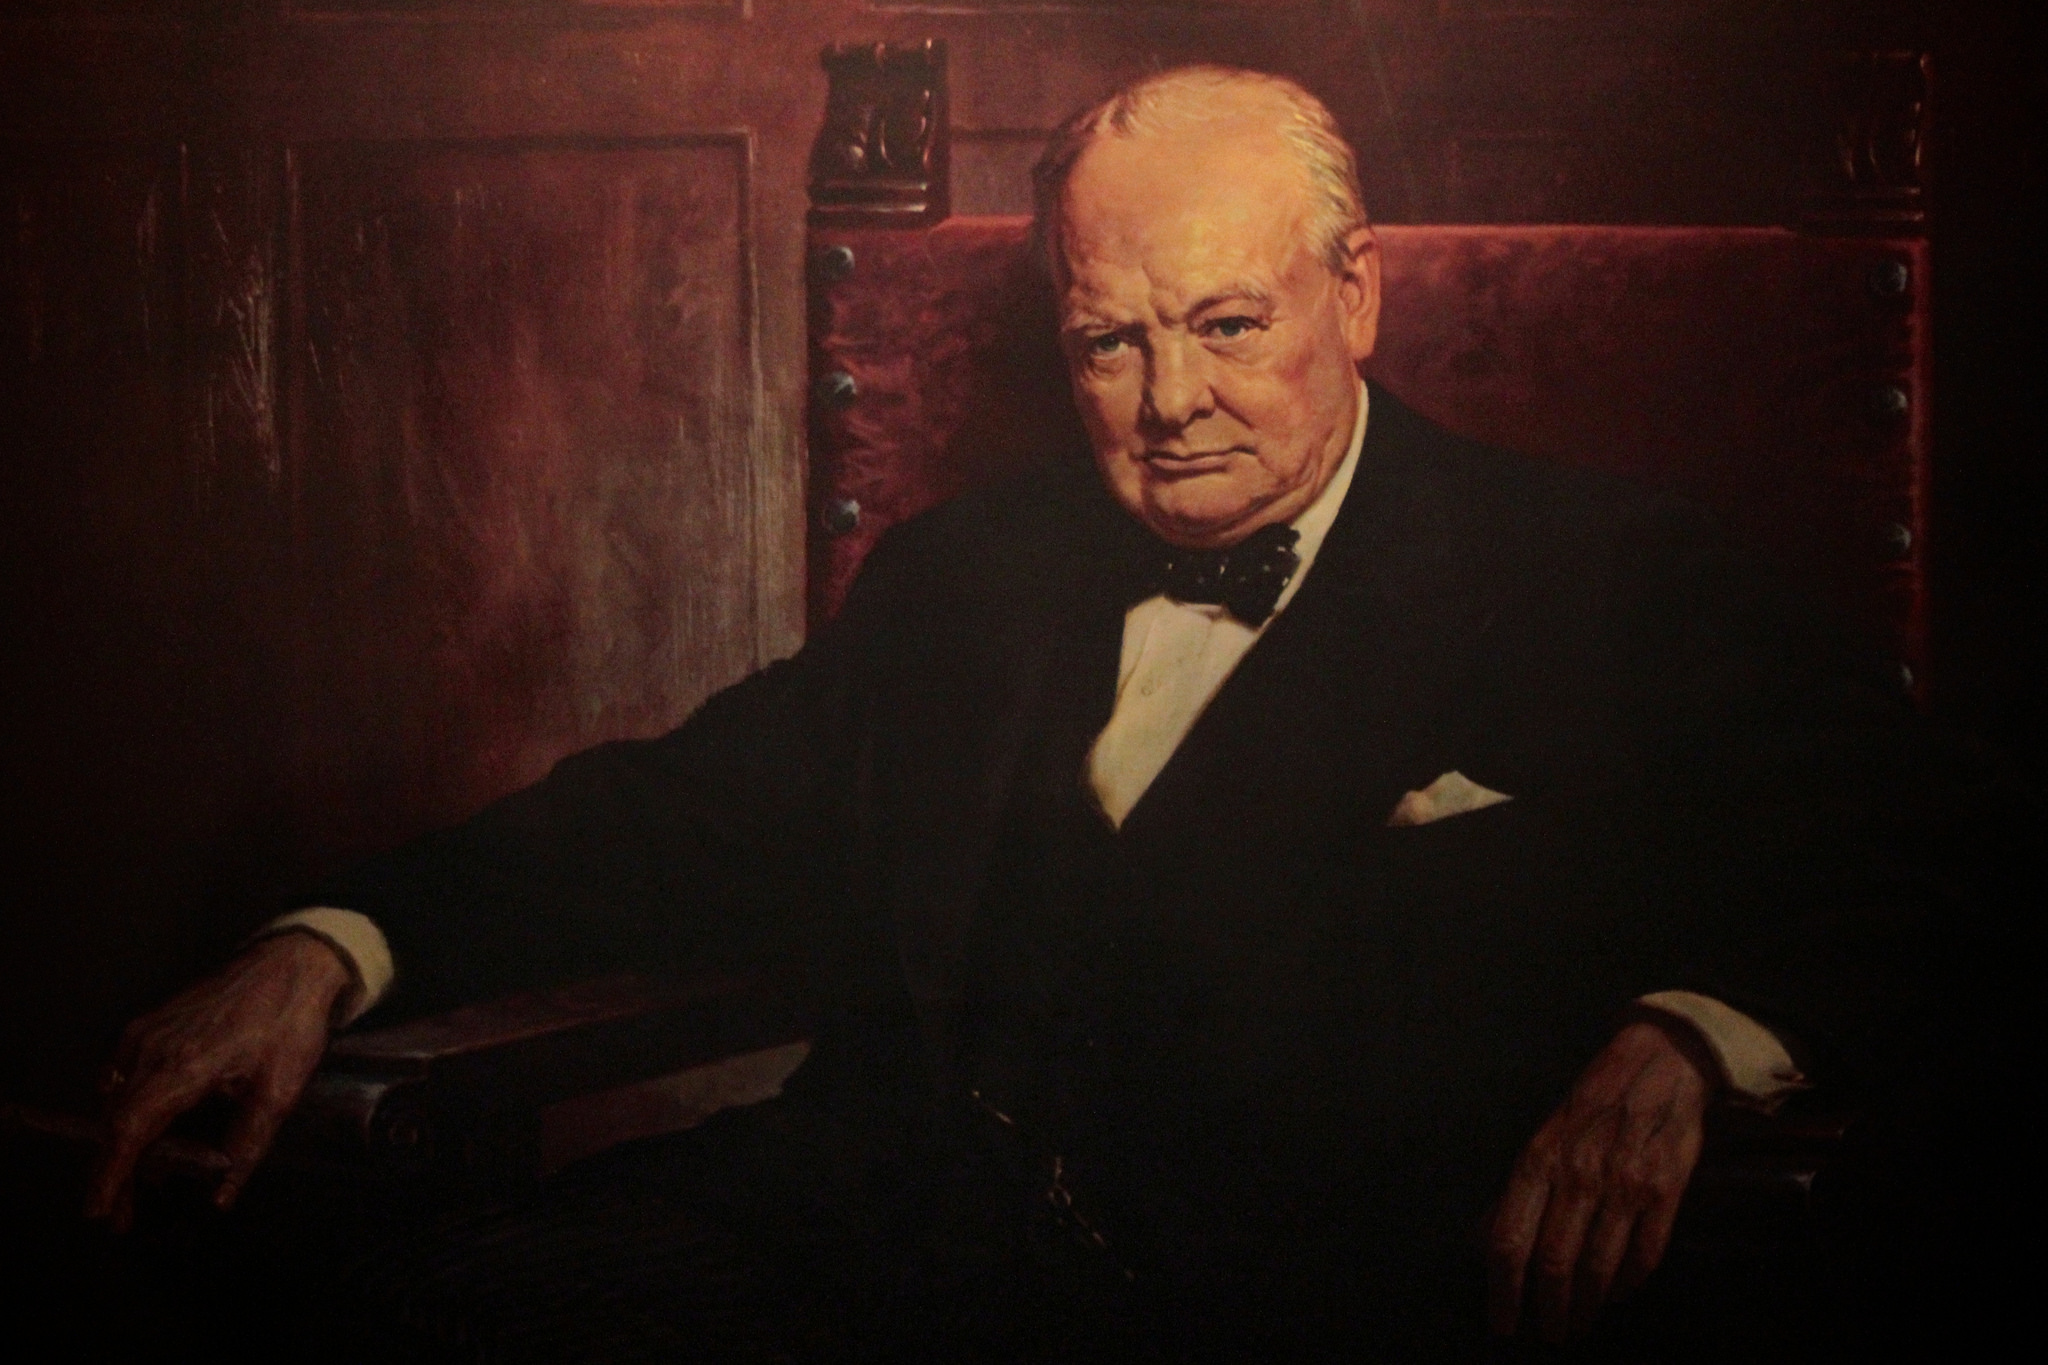 short essay on winston churchill Essay on case study 4-churchill  read these case studies carefully and develop a short report  winston churchill the history of the world consists of.